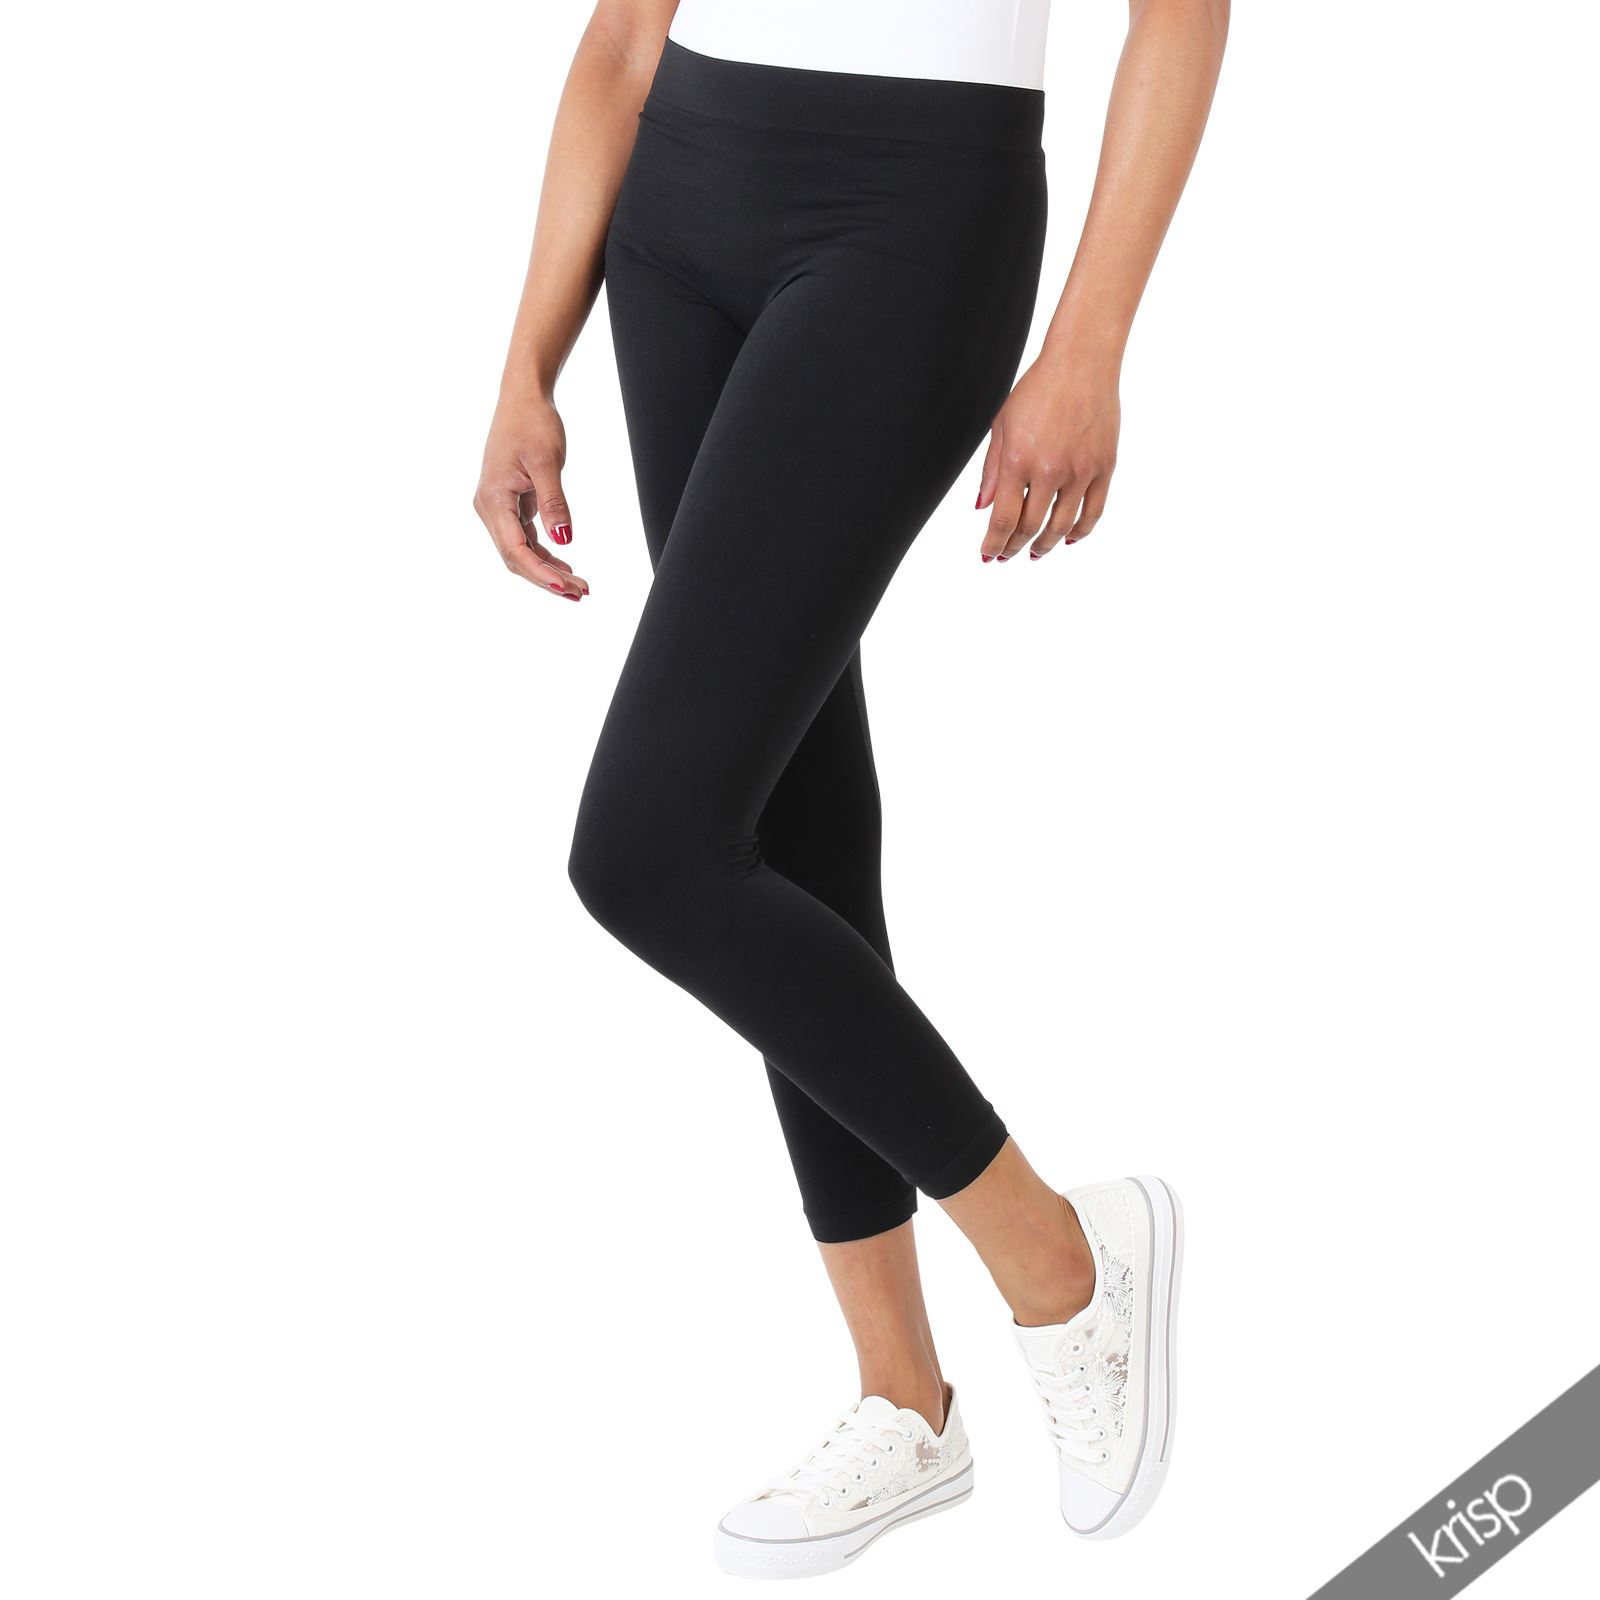 damen schwarze leggings stretch capri lang elastische hose sport fitness yoga ebay. Black Bedroom Furniture Sets. Home Design Ideas